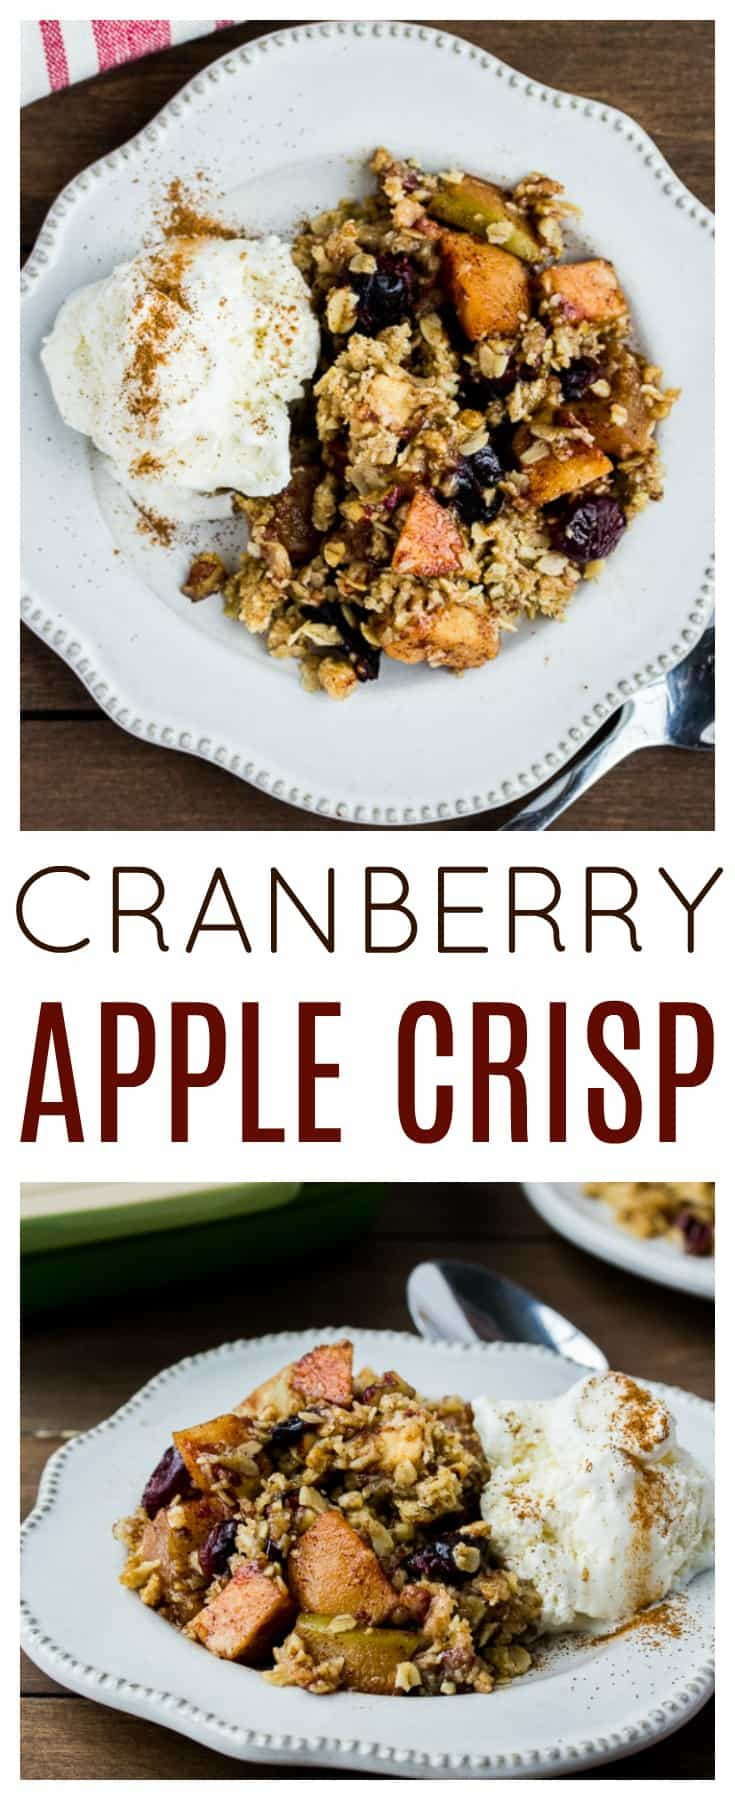 Apple Cranberry Crisp - Apples and cranberries combine with spices and a crispy topping for a delicious easy dessert recipe! Serve warm with vanilla ice cream to sweeten the deal even more! This recipe can easily be made gluten free. | #dlbrecipes #applecranberrycrisp #applecrisp #applerecipe #glutenfree #dessert